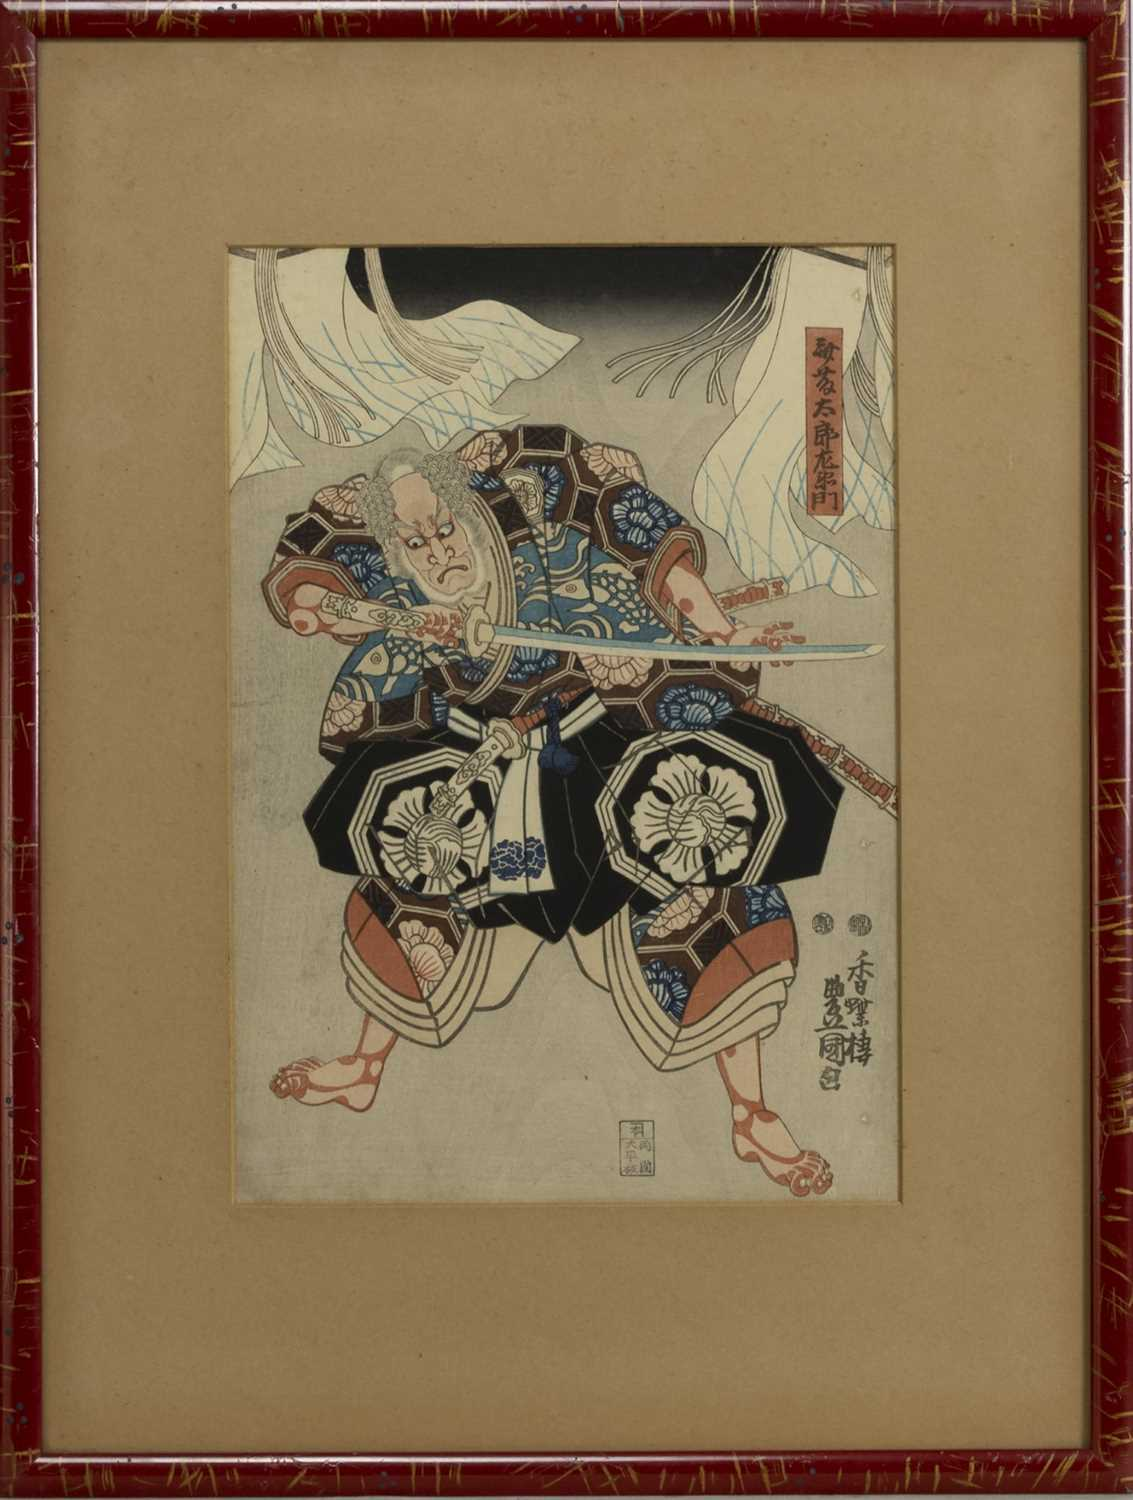 Lot 1662 - AN EARLY 20TH CENTURY JAPANESE WOODBLOCK PRINT